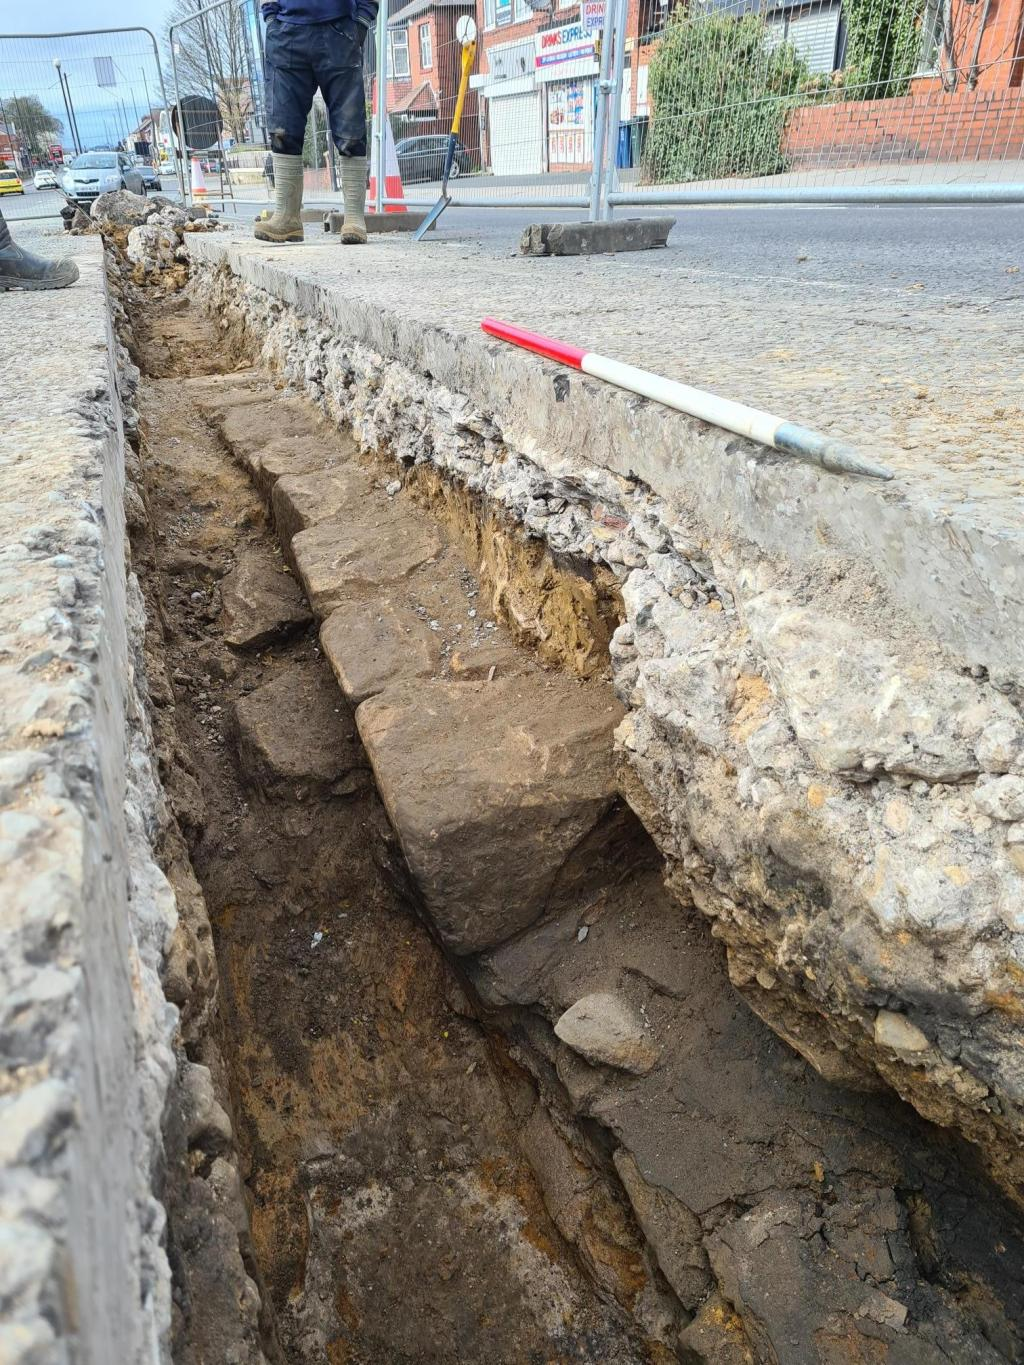 Section of 1,900-Year-Old Hadrian's Wall Uncovered